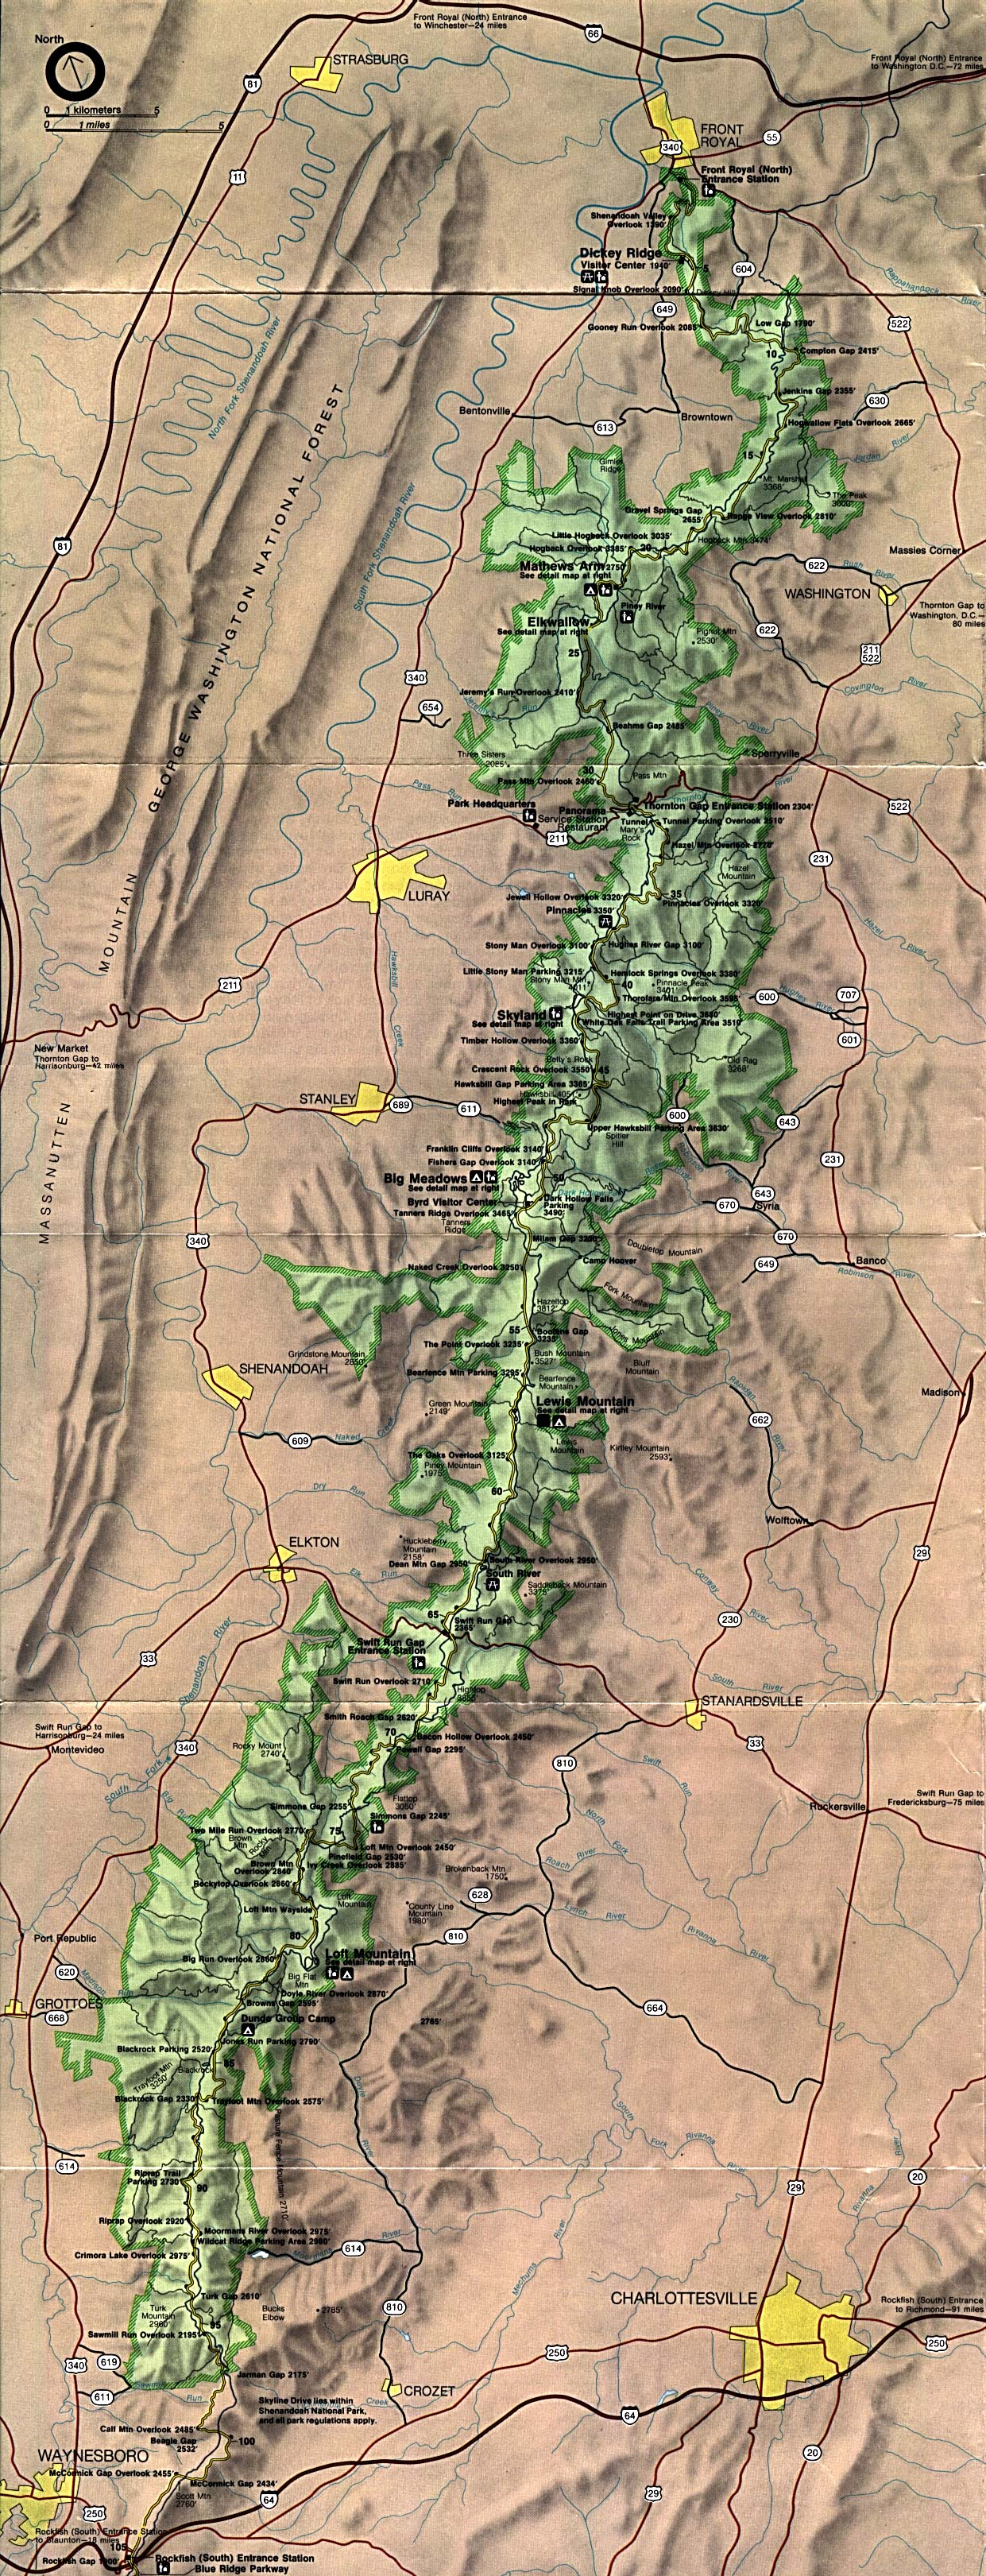 prince william forest park map with Free Virginia National Park Maps on 16 Palettes De Bois Idees De Cloture as well British Columbia further Article673285 together with Giag Trip To Windsor Castle likewise Free Virginia National Park Maps.